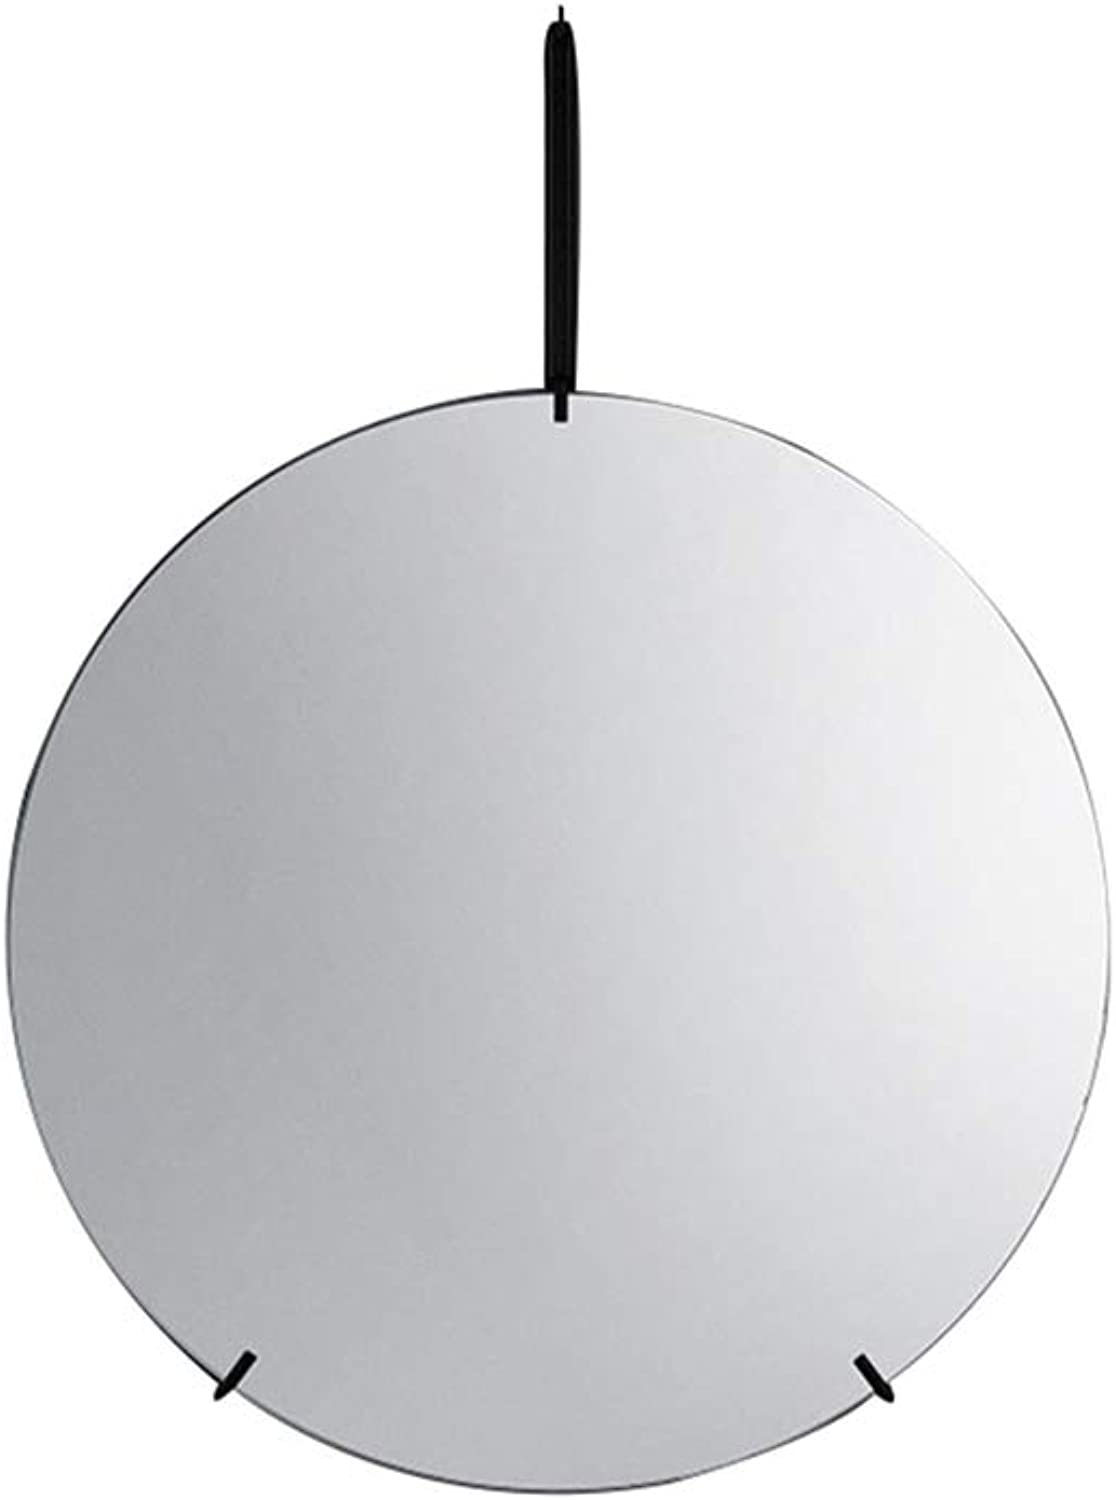 Wall-Mounted Mirror Round Diameter 30cm 40cm 50cm 60cm 70cm Premium Quality Decorative in Bathroom Home  Living Room Black gold with Complete Kit Drilled Holes